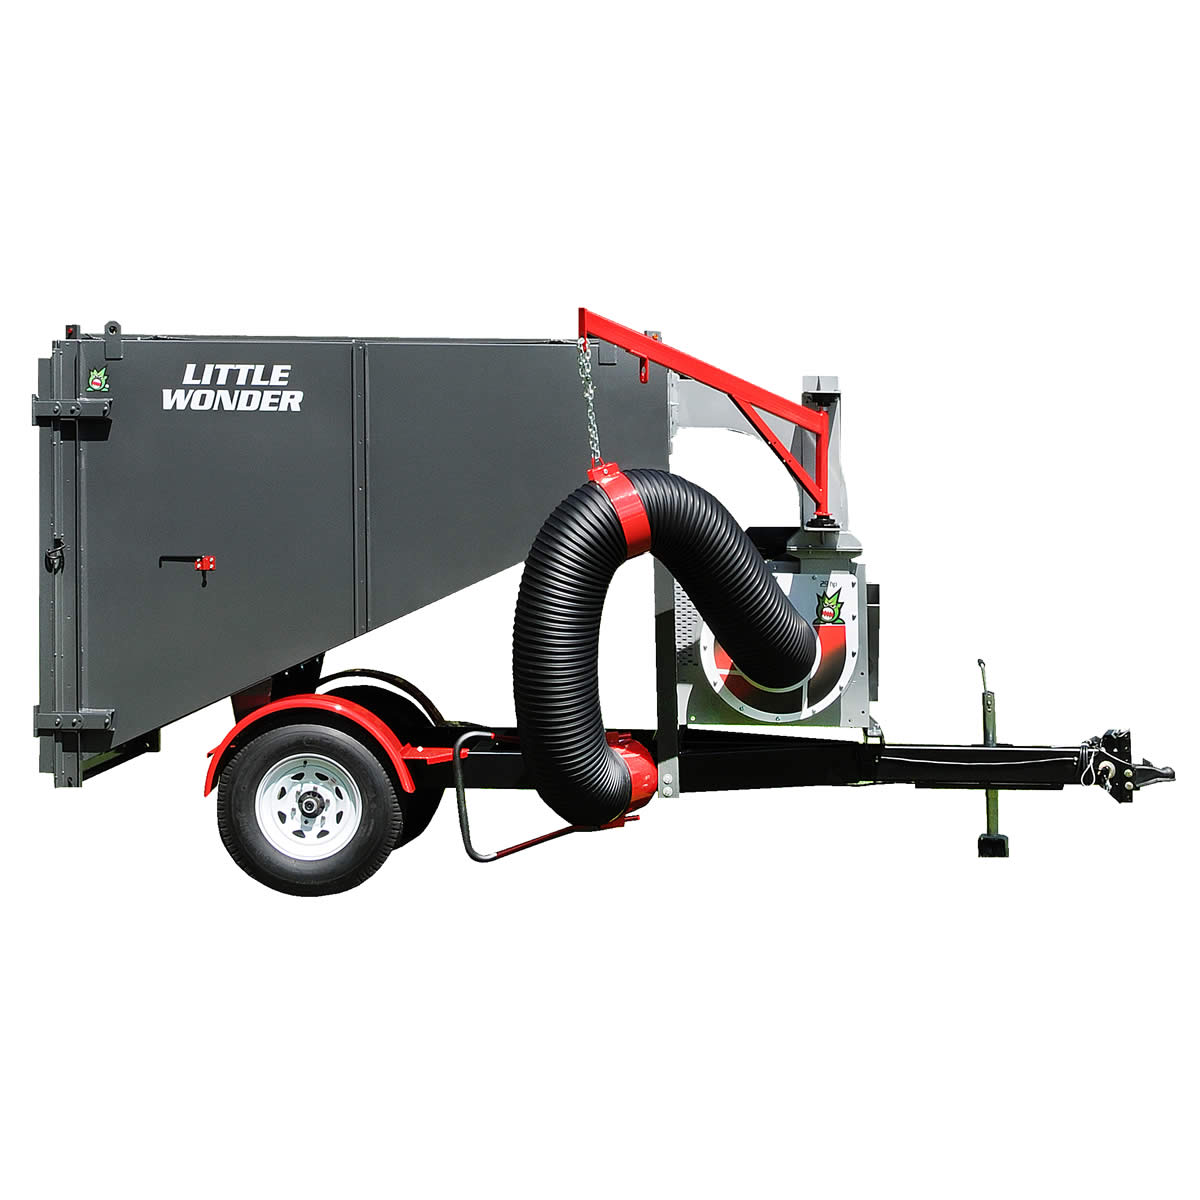 29HP 5 Yard Gravity Dump Self-Contained TruckLoader - Little